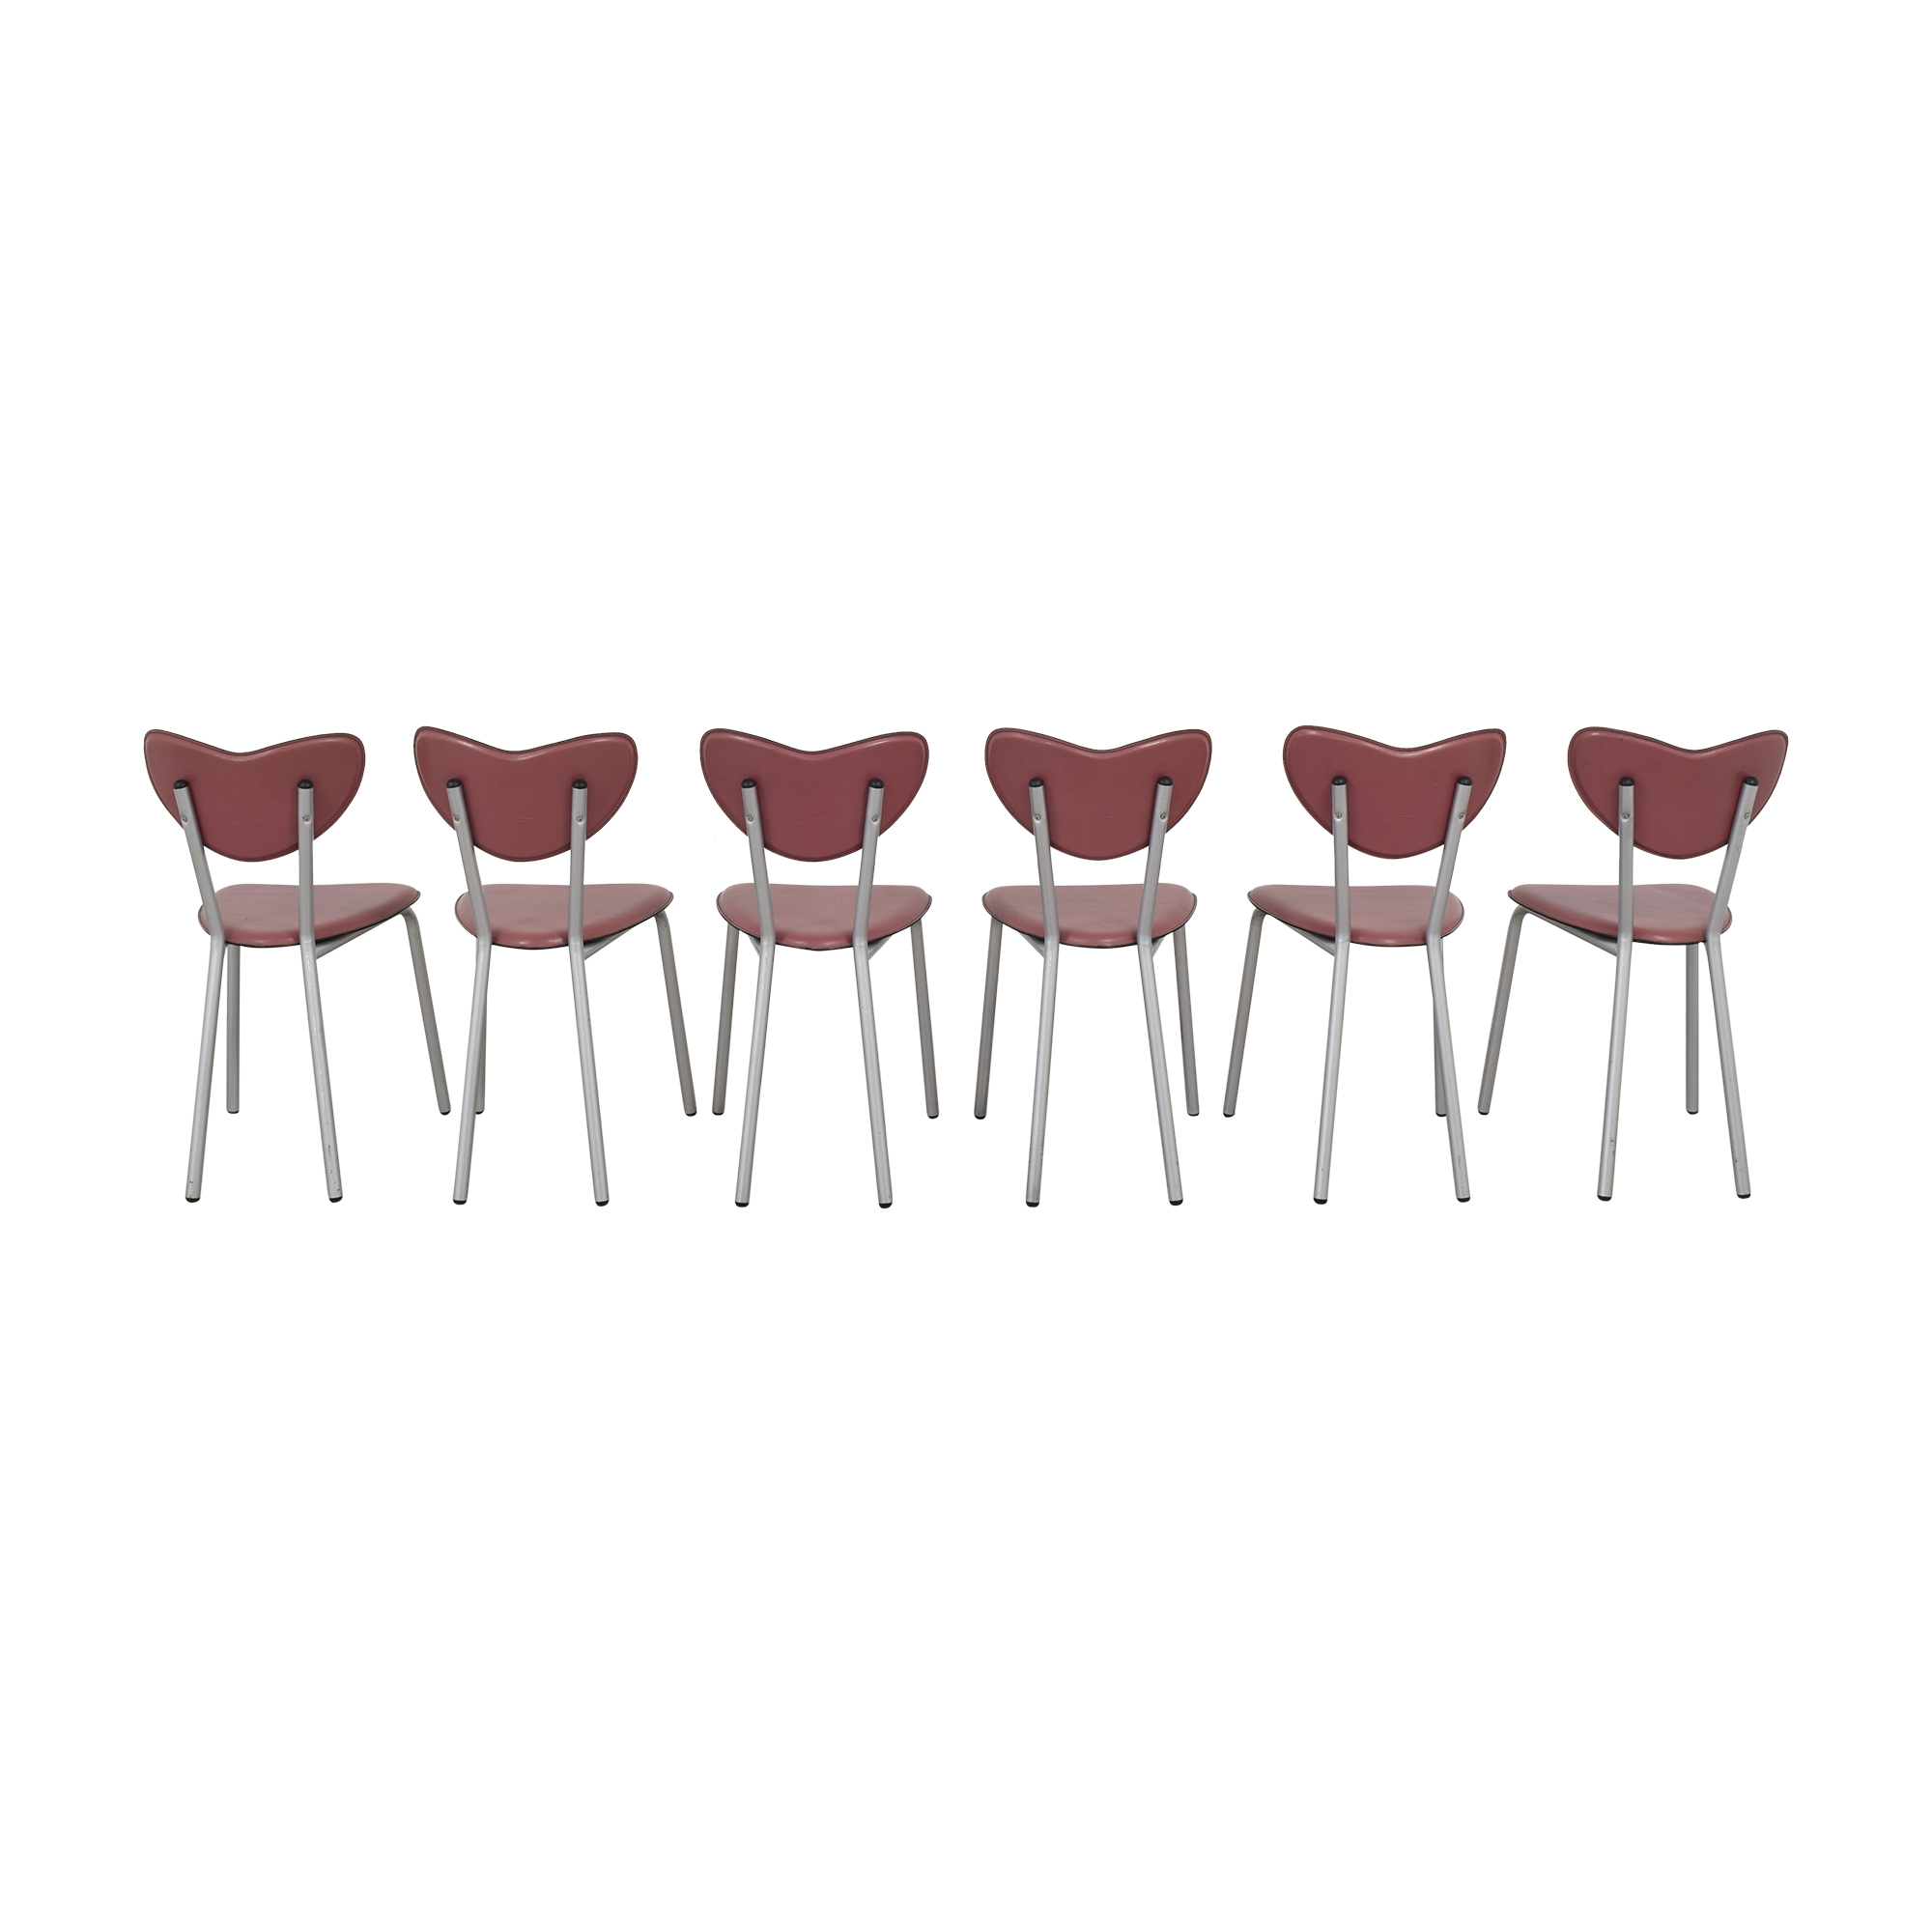 Pellizzoni Pellizzoni Modern Dining Chairs on sale